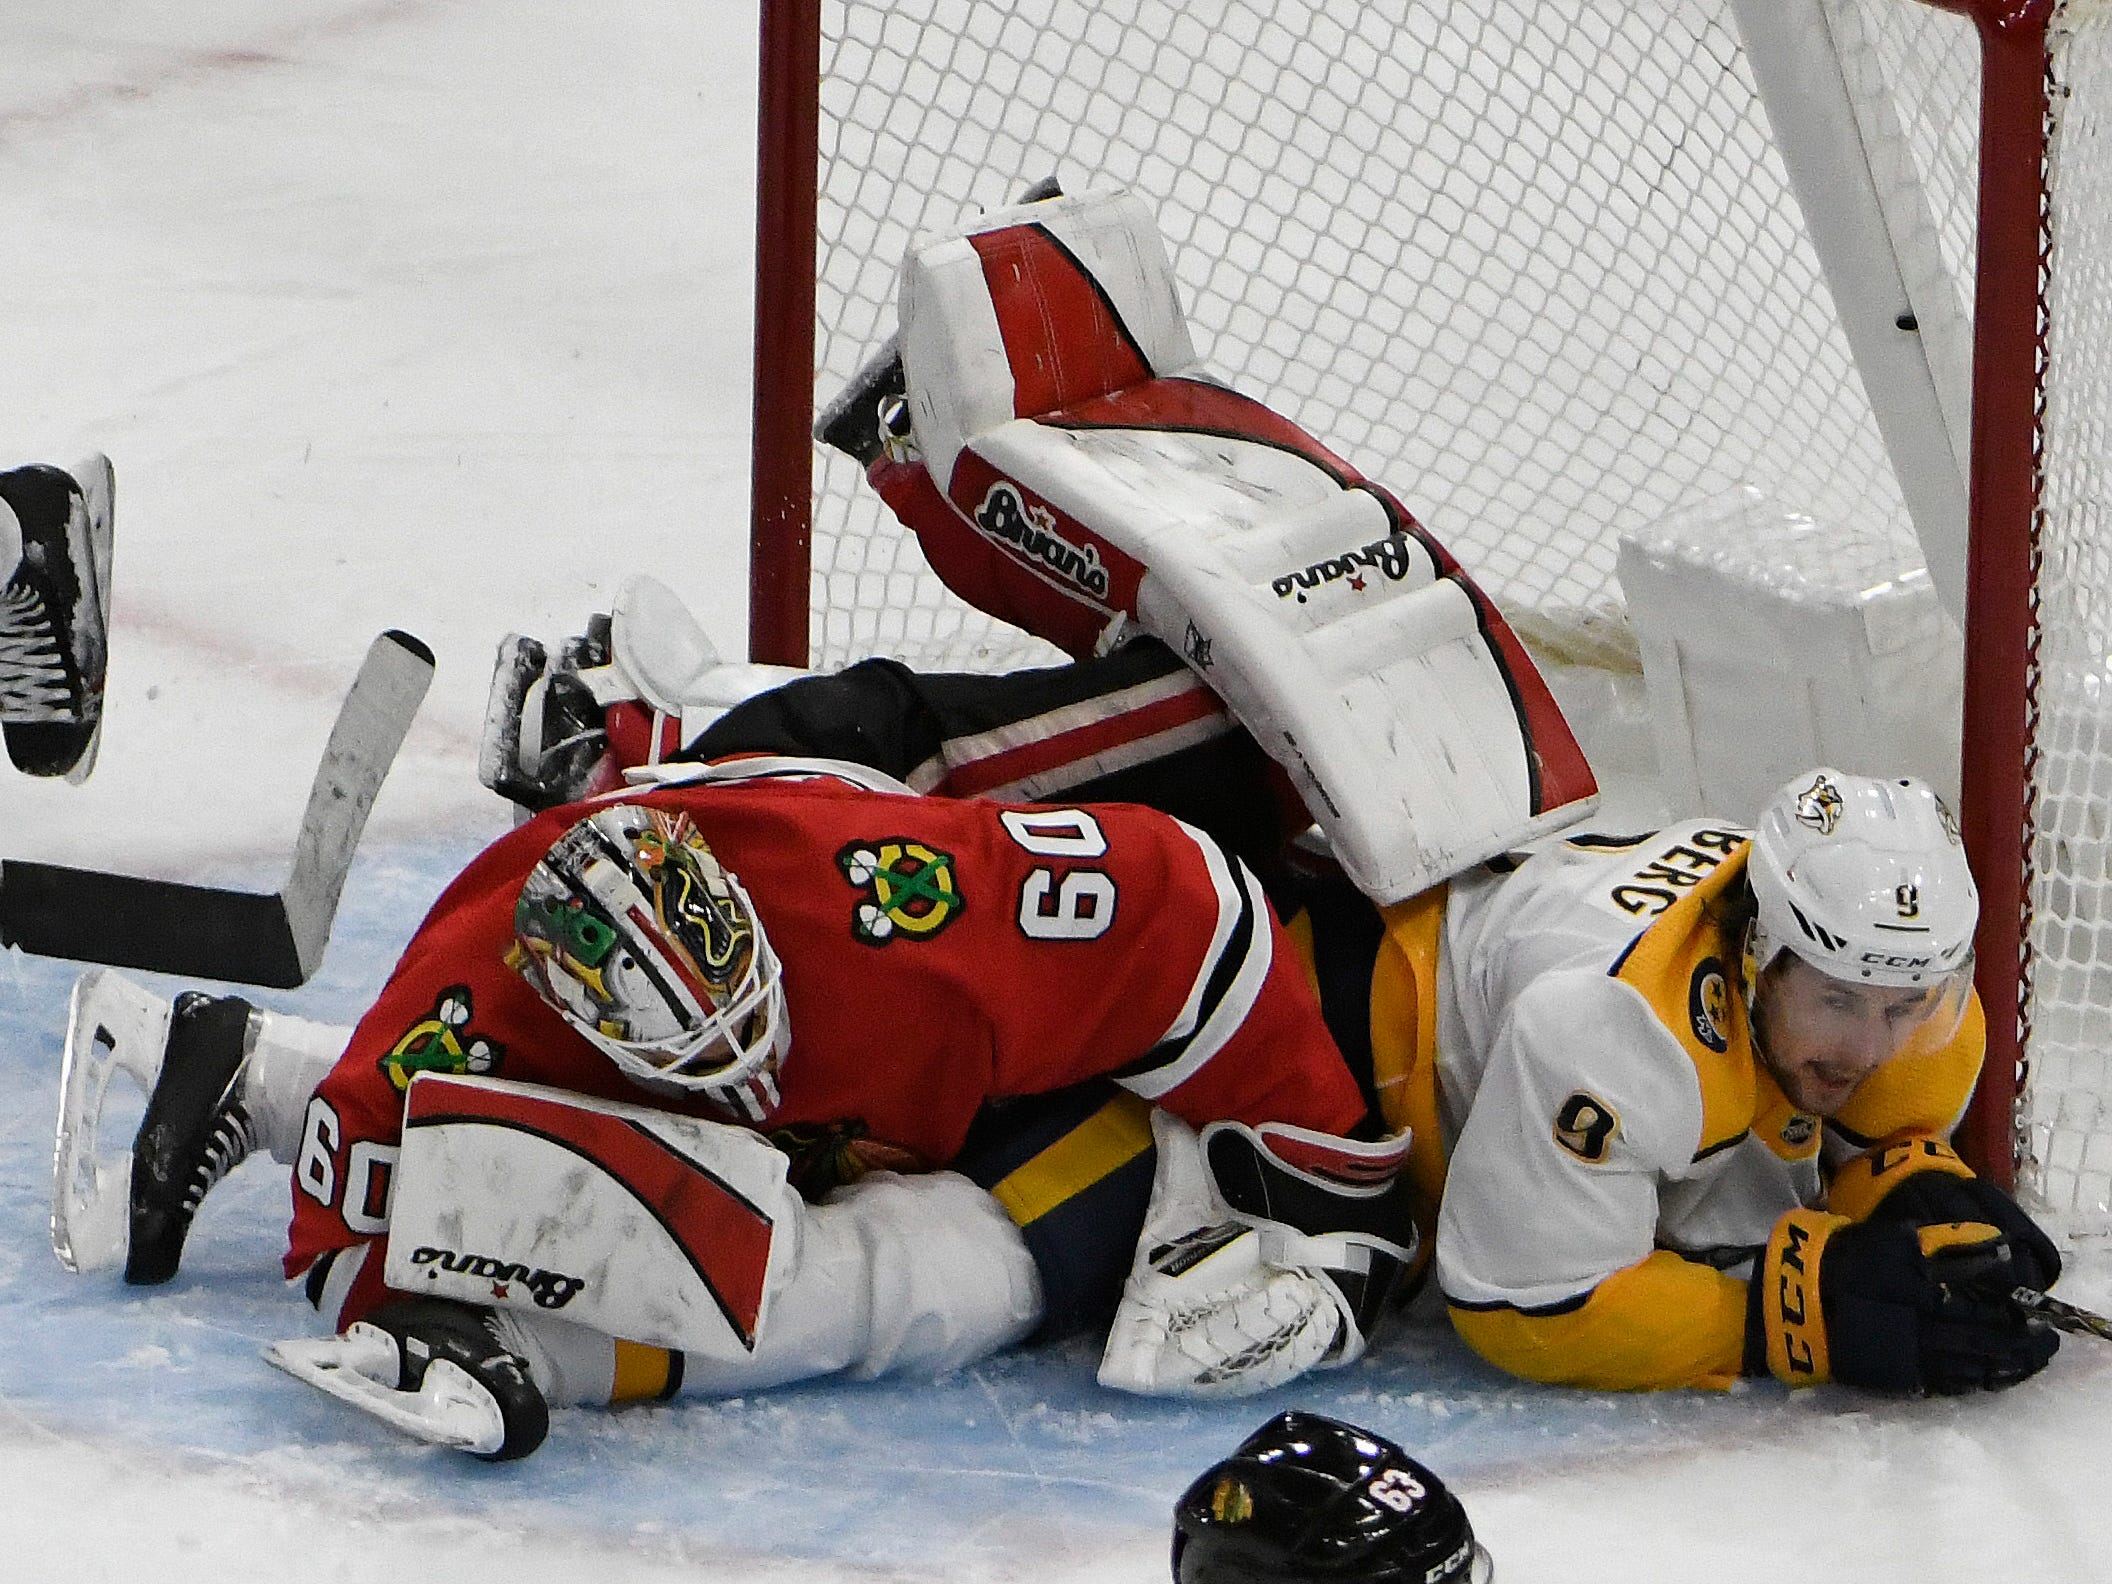 Nashville Predators left wing Filip Forsberg (9) collides with Chicago Blackhawks goaltender Collin Delia (60) during the first period  at United Center.